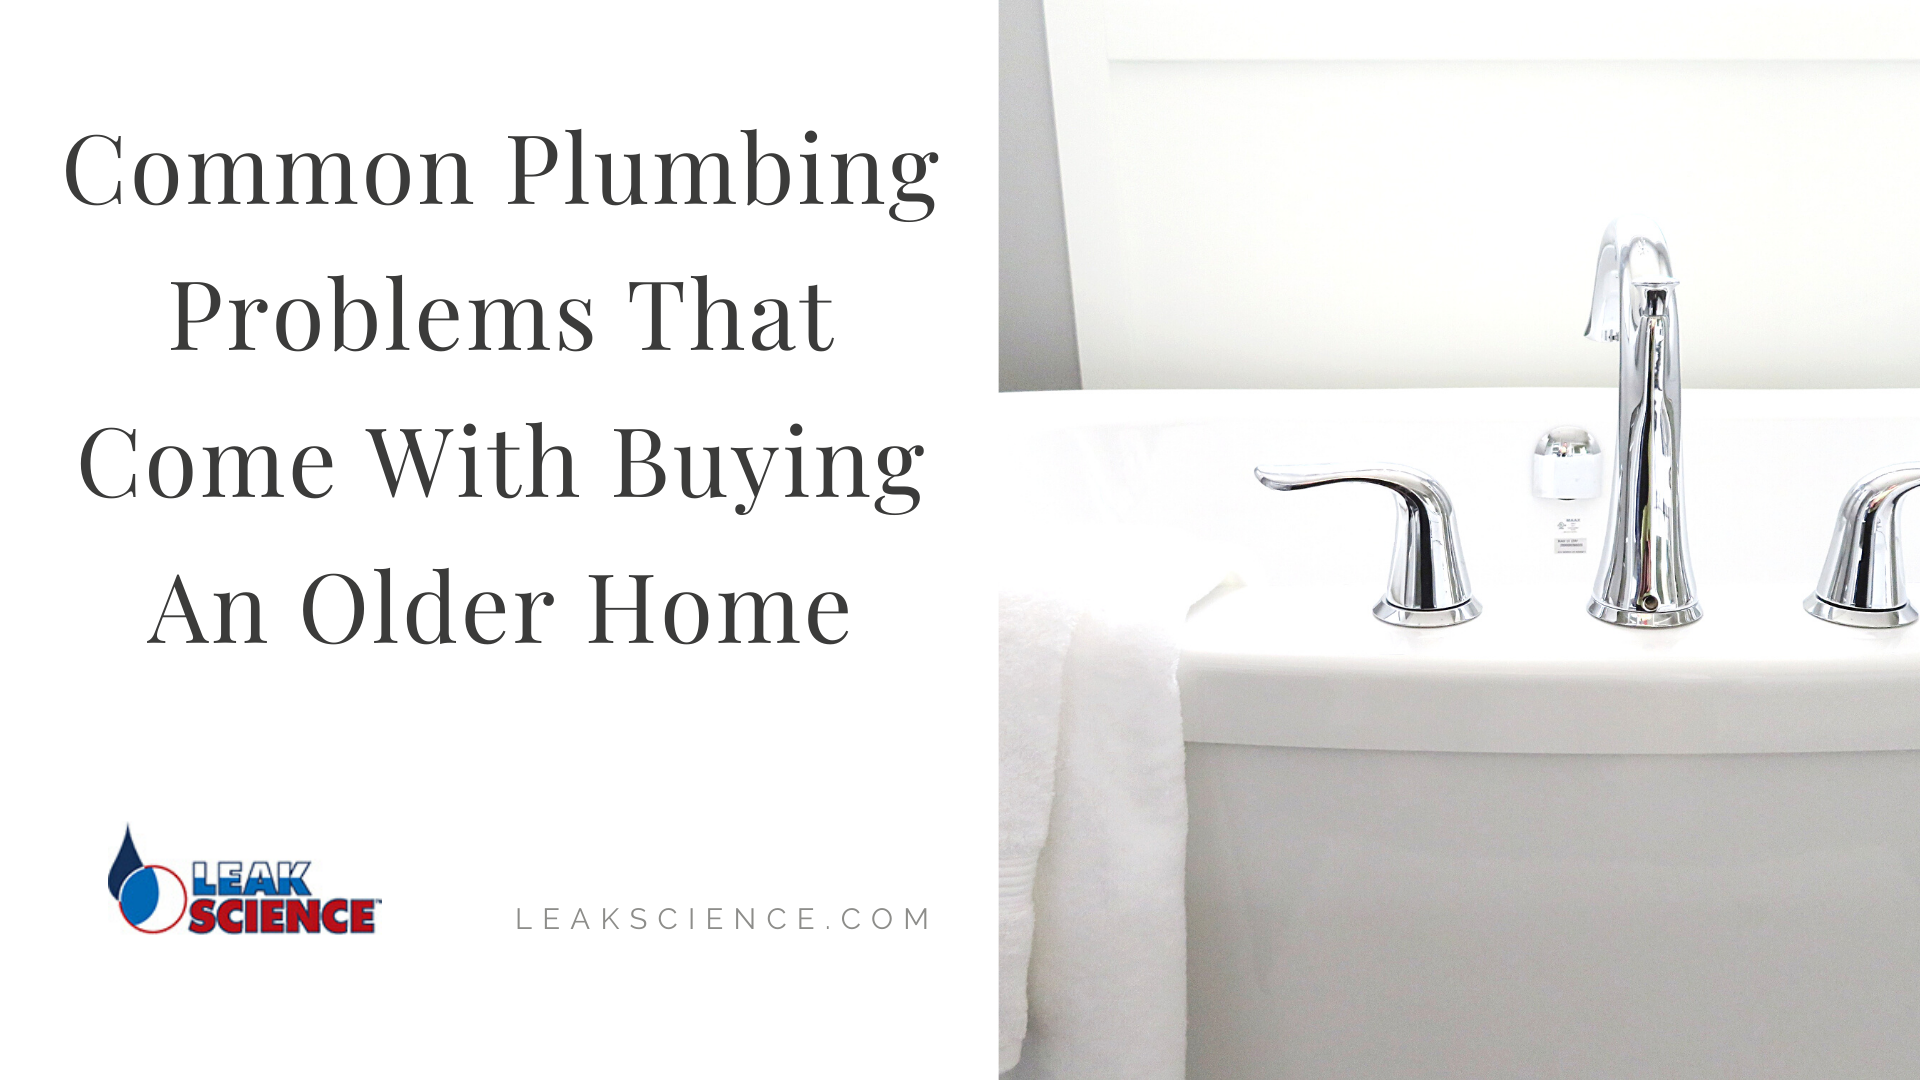 Common Plumbing Problems That Come With Buying An Older Home